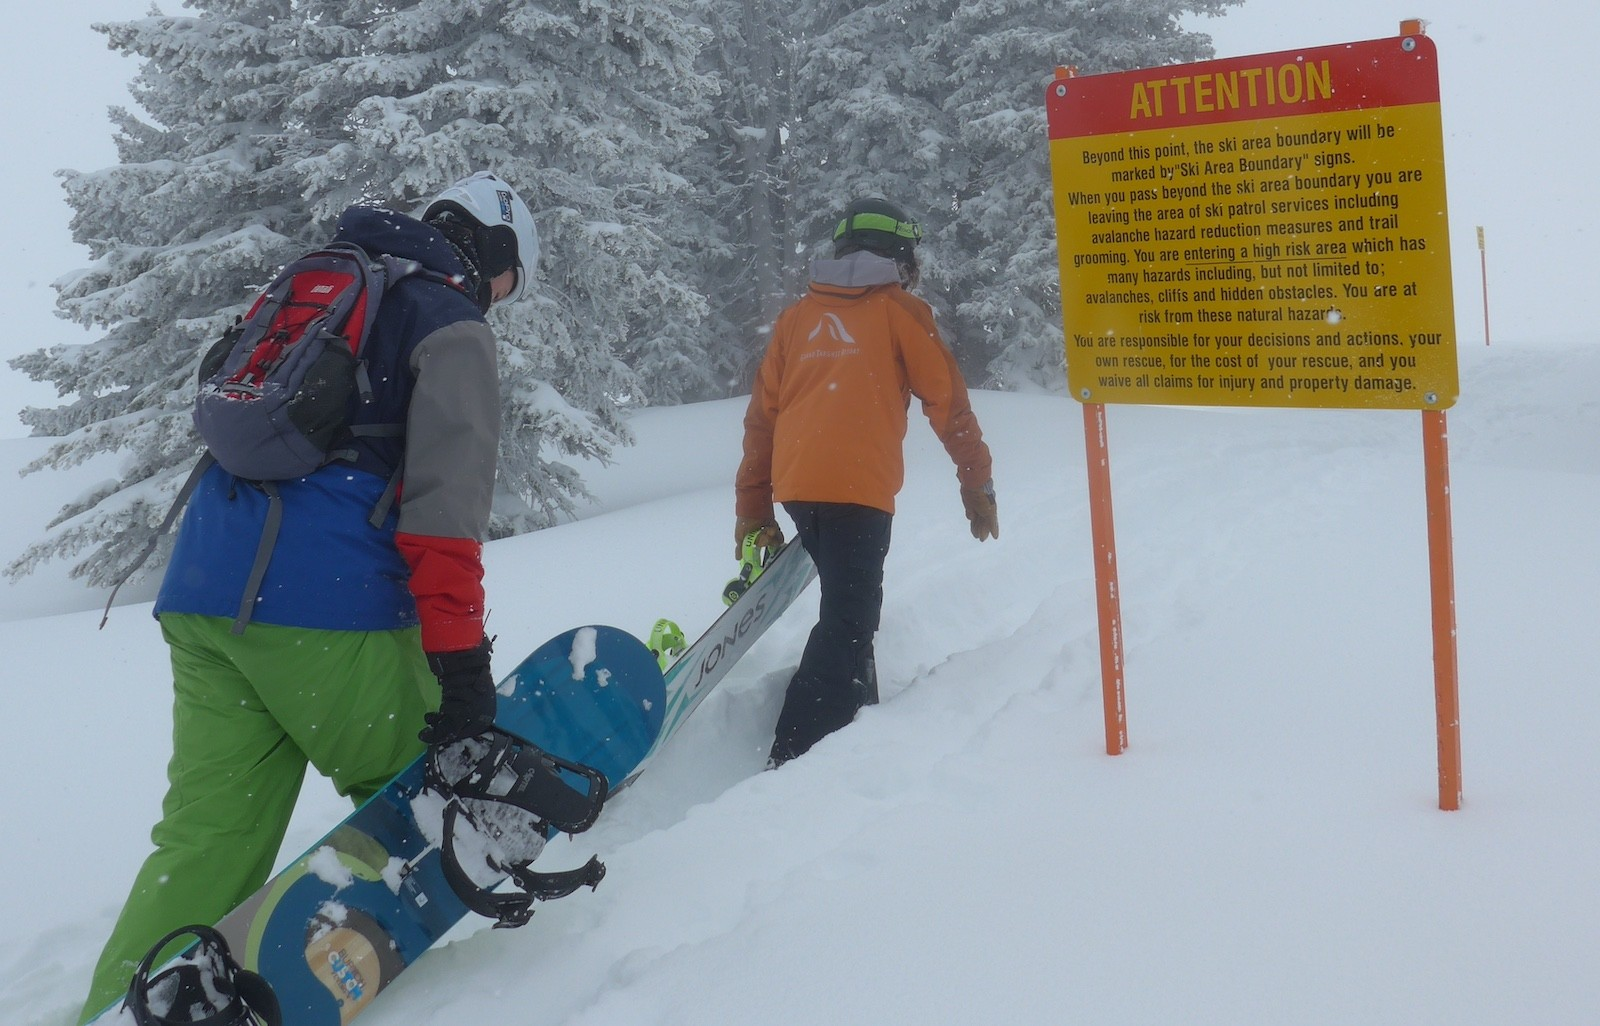 Lessons in powder